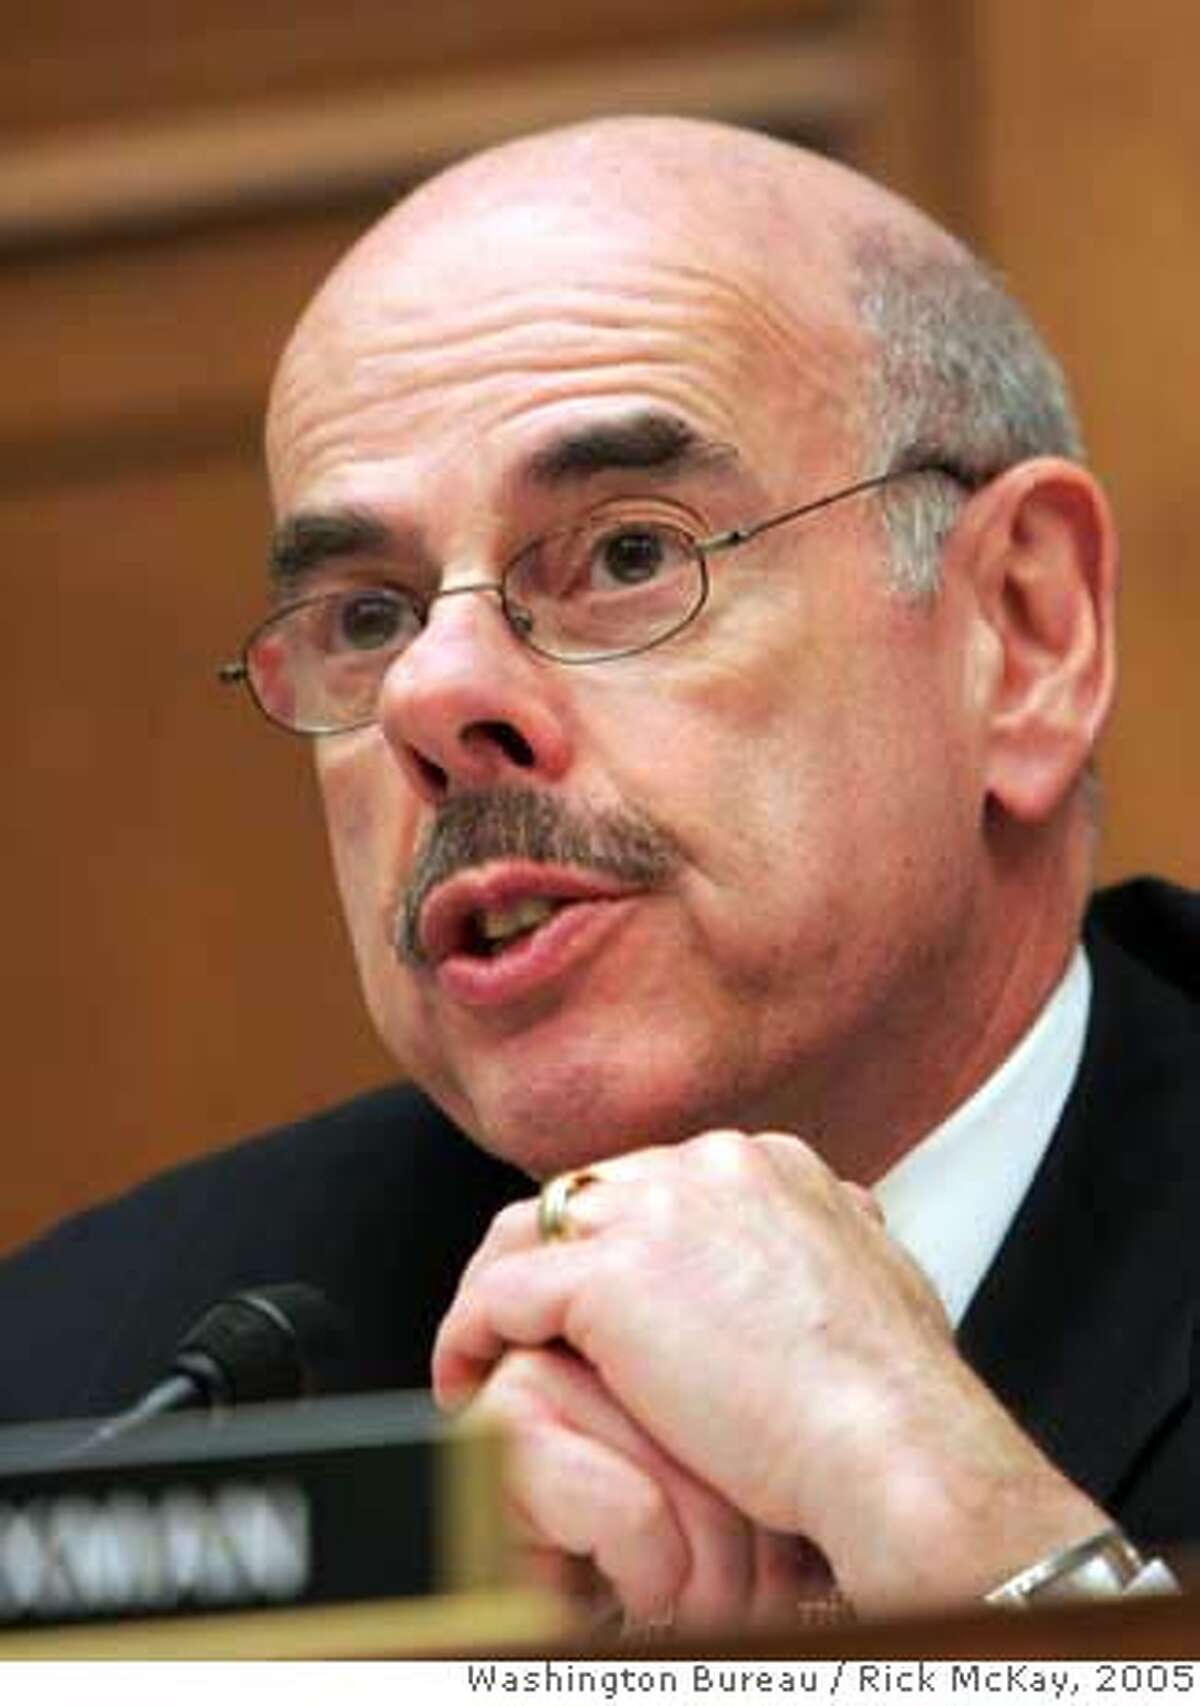 """Photo by Rick McKay/Washington Bureau slug: COX-OVERCLASSIFY03 WASHINGTON... Rep. Henry A. Waxman,D-Ca., questions a witness Wednesday, March 2, 2005, at a House hearing on the overclassification of government documents. """"The American people understand that some information must be kept secret to protect the public safety,"""" Waxman said. """"But when the government systematically hides information from the public, government stops belonging to the people."""" (Photo by Rick McKay/Washington Bureau) Ran on: 03-14-2005 Rep. Henry Waxman says Barry Bonds may come before us at some future hearing. Ran on: 03-14-2005 Rep. Henry Waxman says Barry Bonds may come before us at some future hearing. Ran on: 03-16-2005 Republican Rep. Tom Davis of Virgina, left, and Democratic Rep. Henry Waxman of Los Angeles are veterans of investigations carried out by the Government Reform Committee, which Davis chairs. Ran on: 04-01-2005 Rep. Thomas Davis, a Virginia Republican, chairs the panel looking into doping by athletes. Ran on: 07-23-2006 Rep. Henry Waxman, D-Los Angeles, uses exhaustive research to influence issues. ALSO Ran on: 05-28-2007 Rep Henry Waxman (at podium) has worked on such groundbreaking legislation as the Clean Air Act during his tenure. The thing that brings me the most satisfaction is to pass legislation that I know is going to make an important difference in peoples lives, he says. ALSO Ran on: 06-22-2007 Vice President Dick Cheney is exempt from the rules, his office contends. Ran on: 07-17-2007 Pat Tillman Ran on: 07-17-2007 Pat Tillman Nation#MainNews#Chronicle#4/1/2005#ALL#5star##0422667783"""